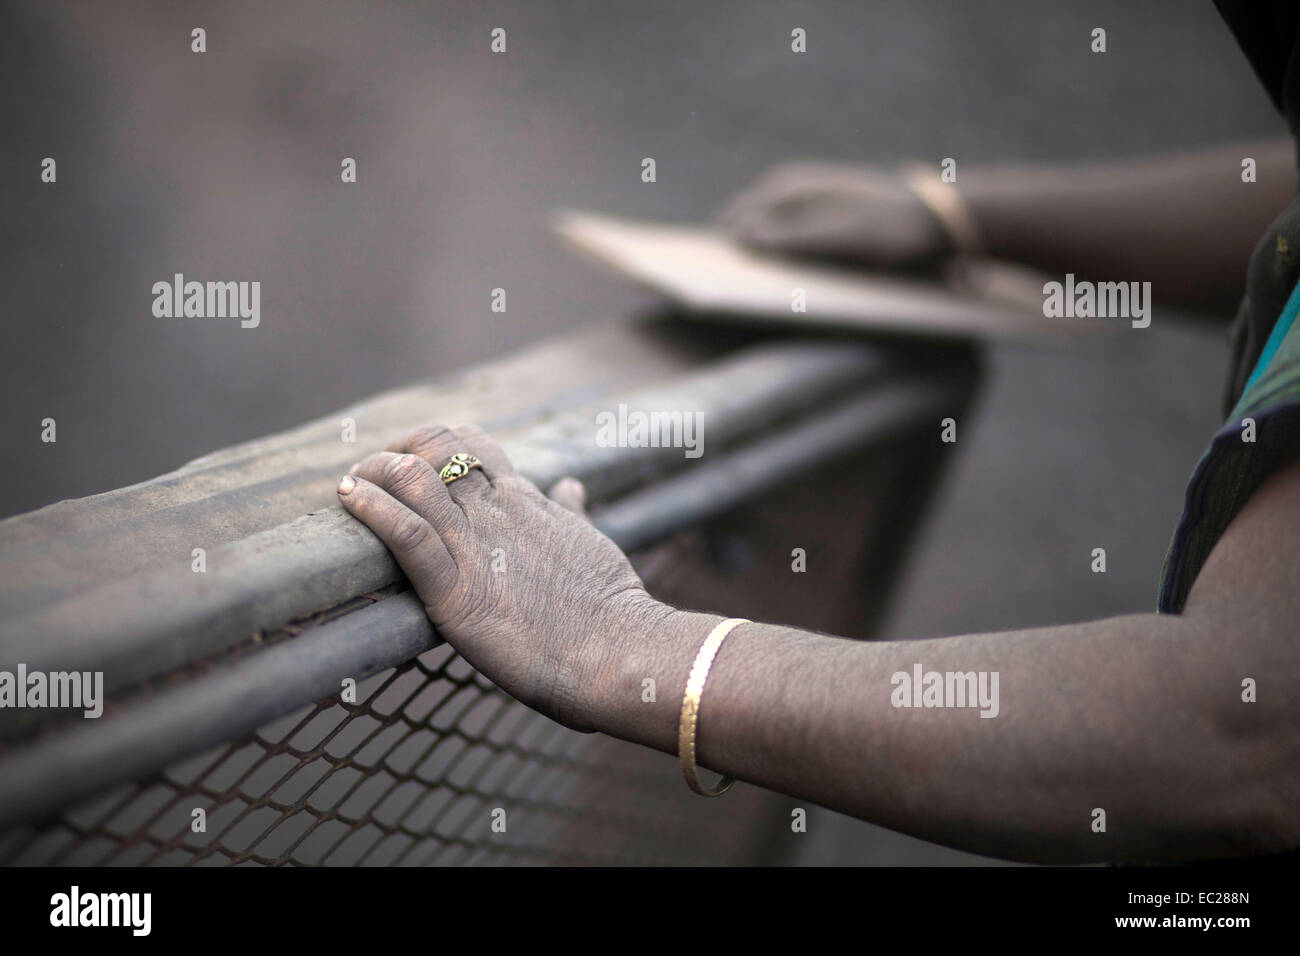 Dhaka, Bangladesh. 08th Dec, 2014. women labor working in dusty environment of waste coal processing by earning - Stock Image